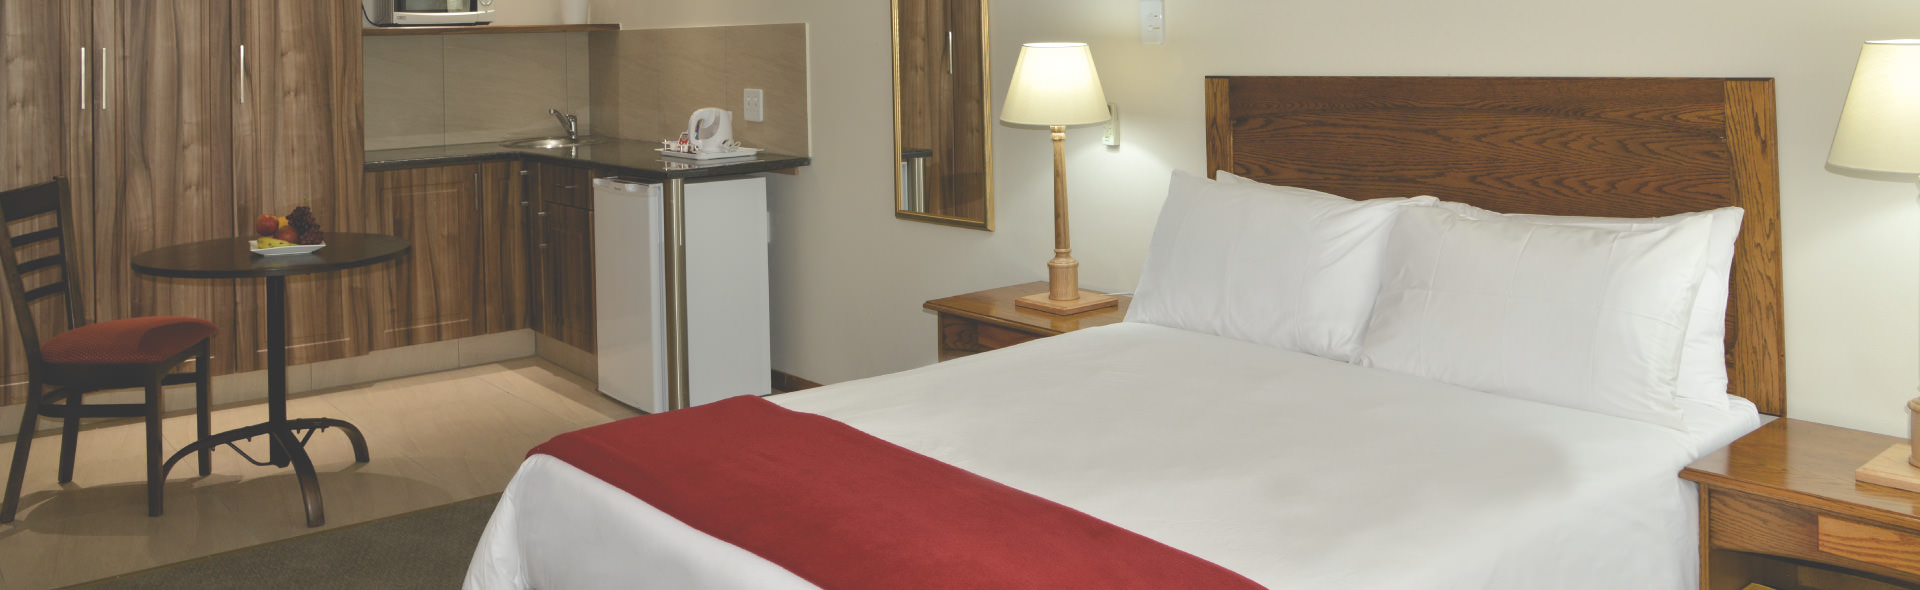 Double bed and kitchenette Park Hotel room